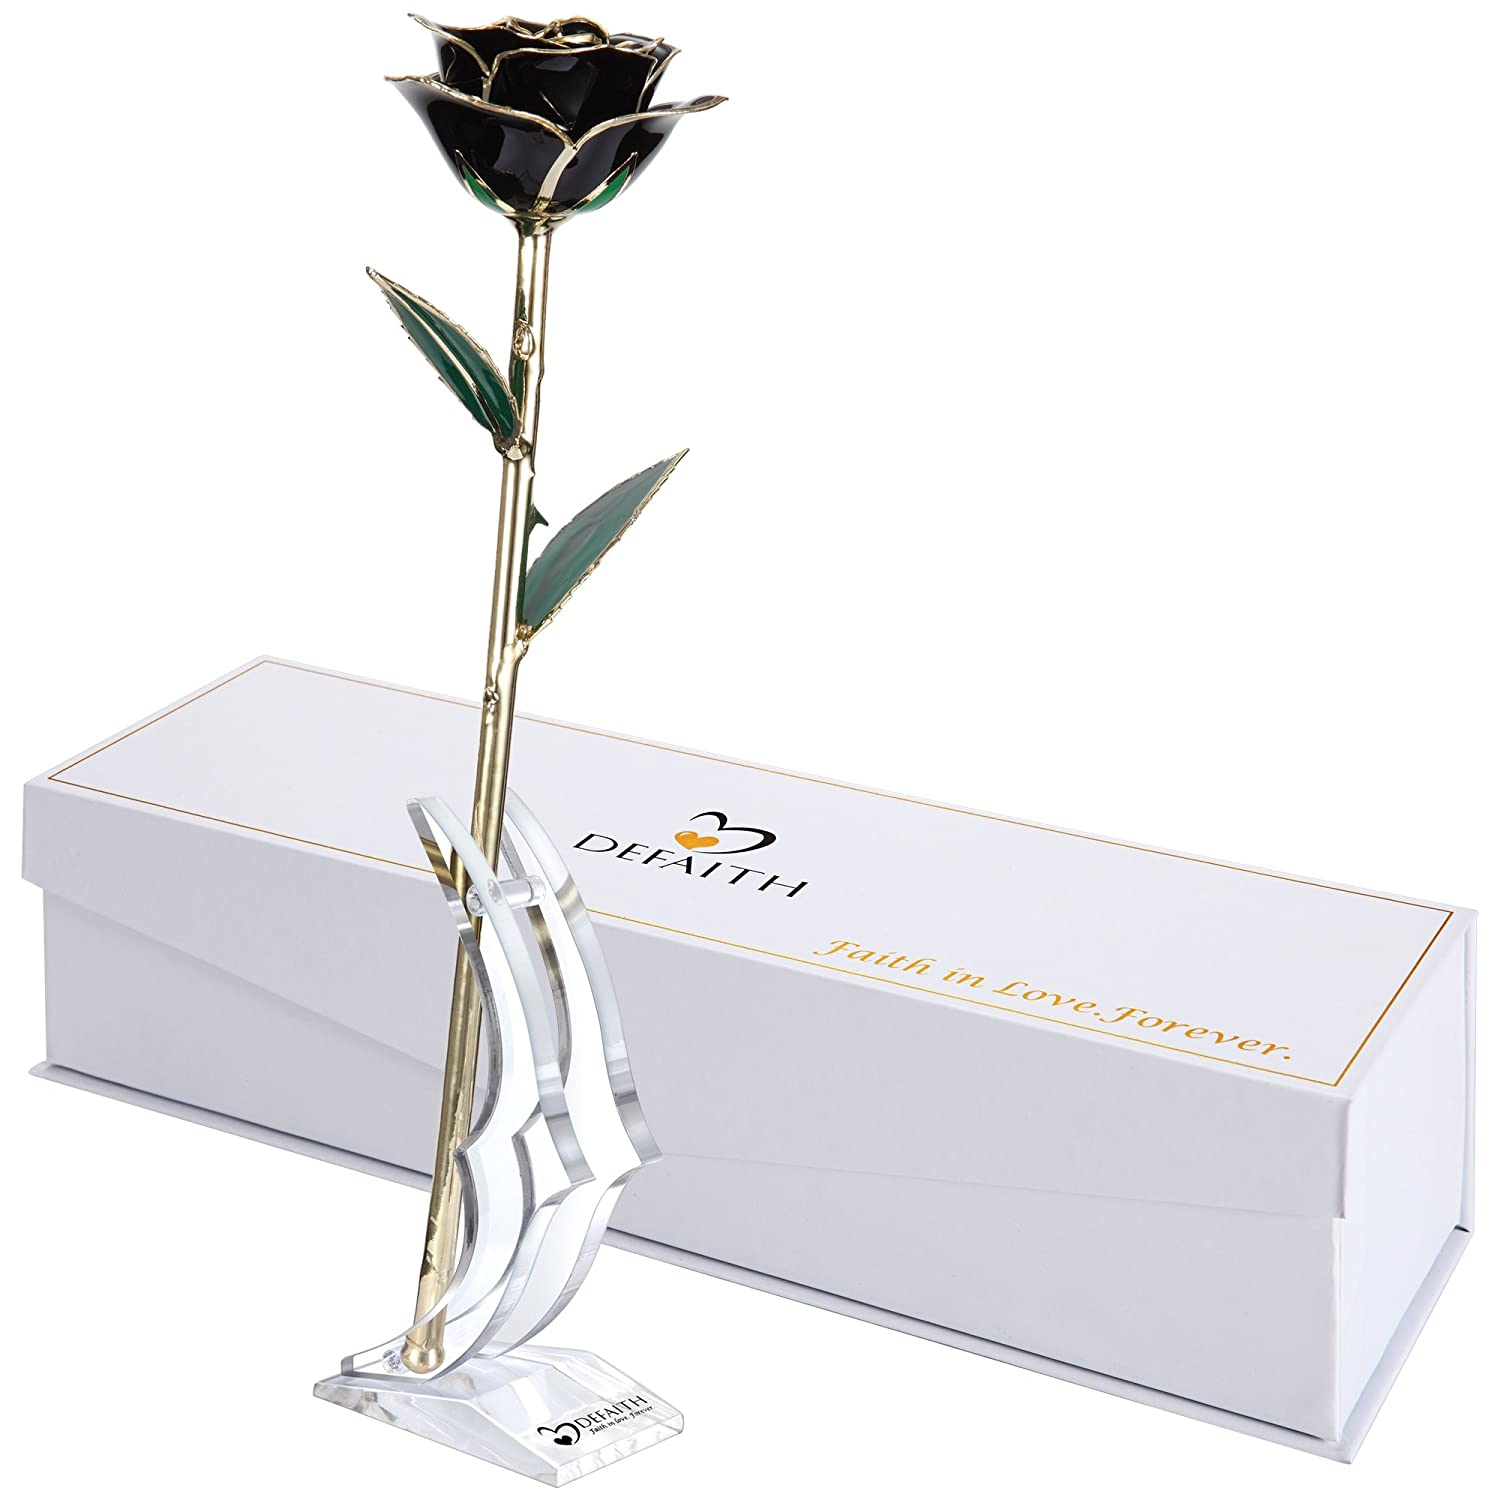 (O.black) - DeFaith Black 24K Gold Rose, Unique Anniversary Gifts for Mother Wife Girlfriend Her Women, Made from Real Rose Flower with Stand B014IZ4S1O O.black